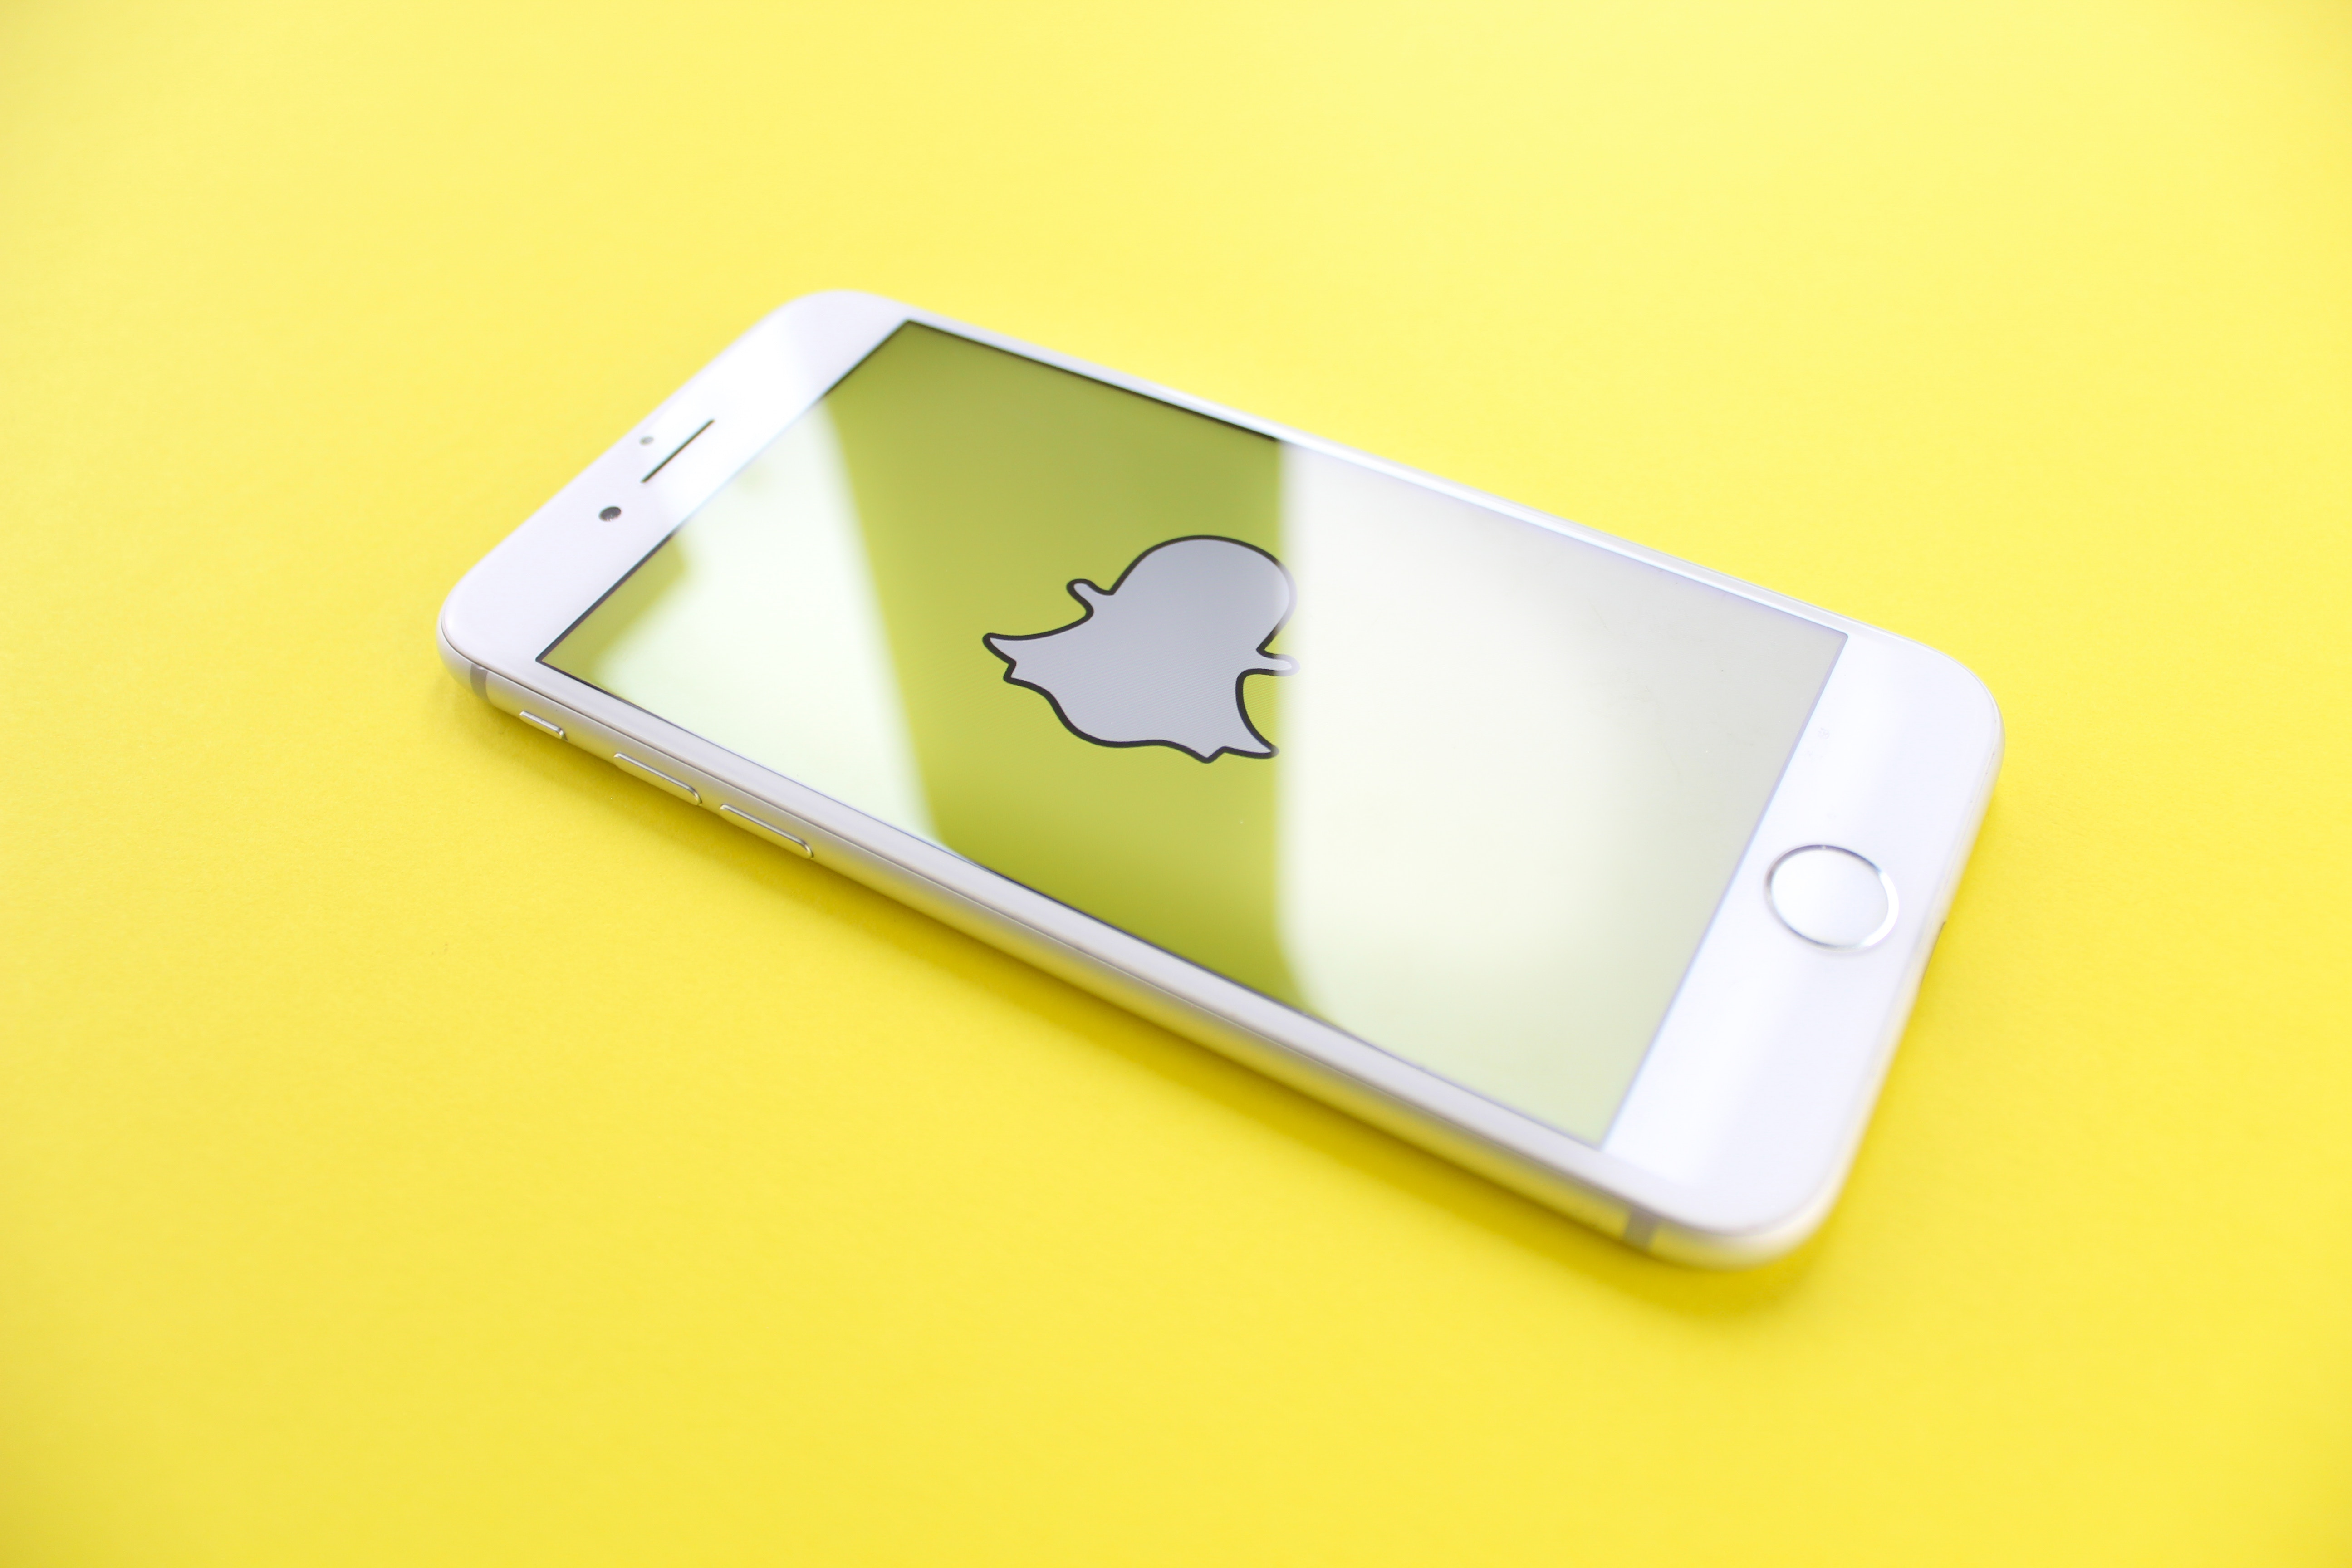 Phone on yellow background